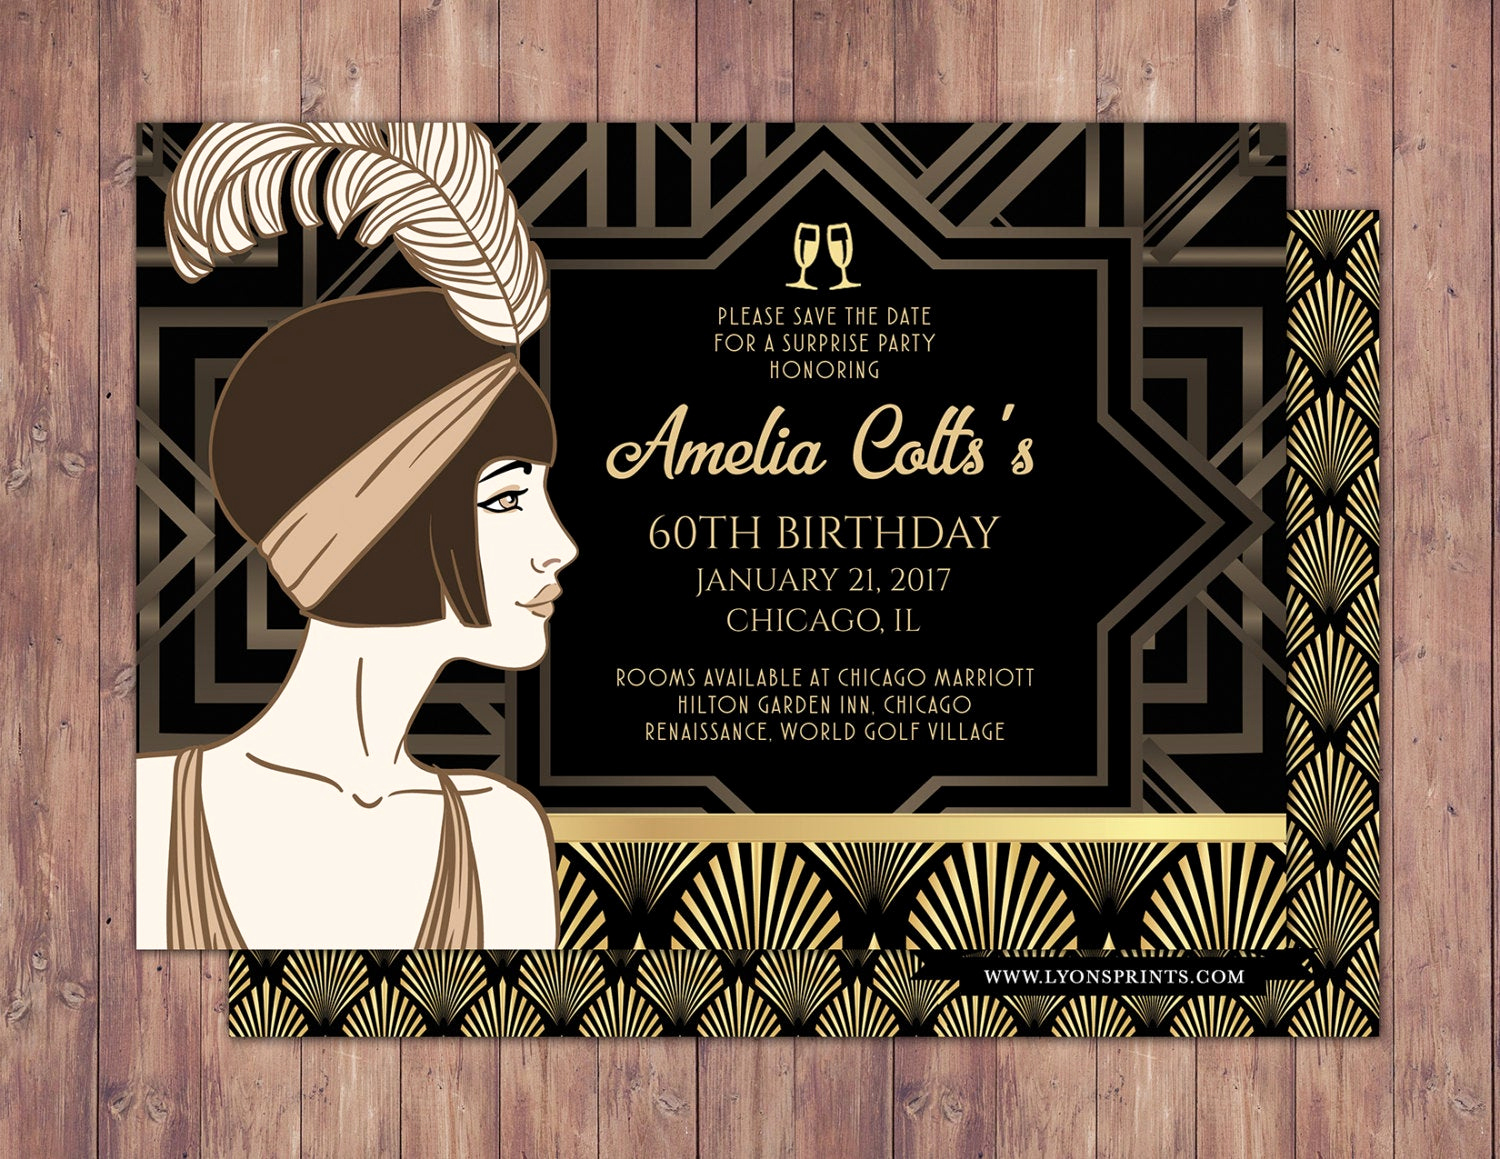 Great Gatsby Invitation Wording Elegant Great Gatsby Save the Date Invitation Rsvp Card Roaring